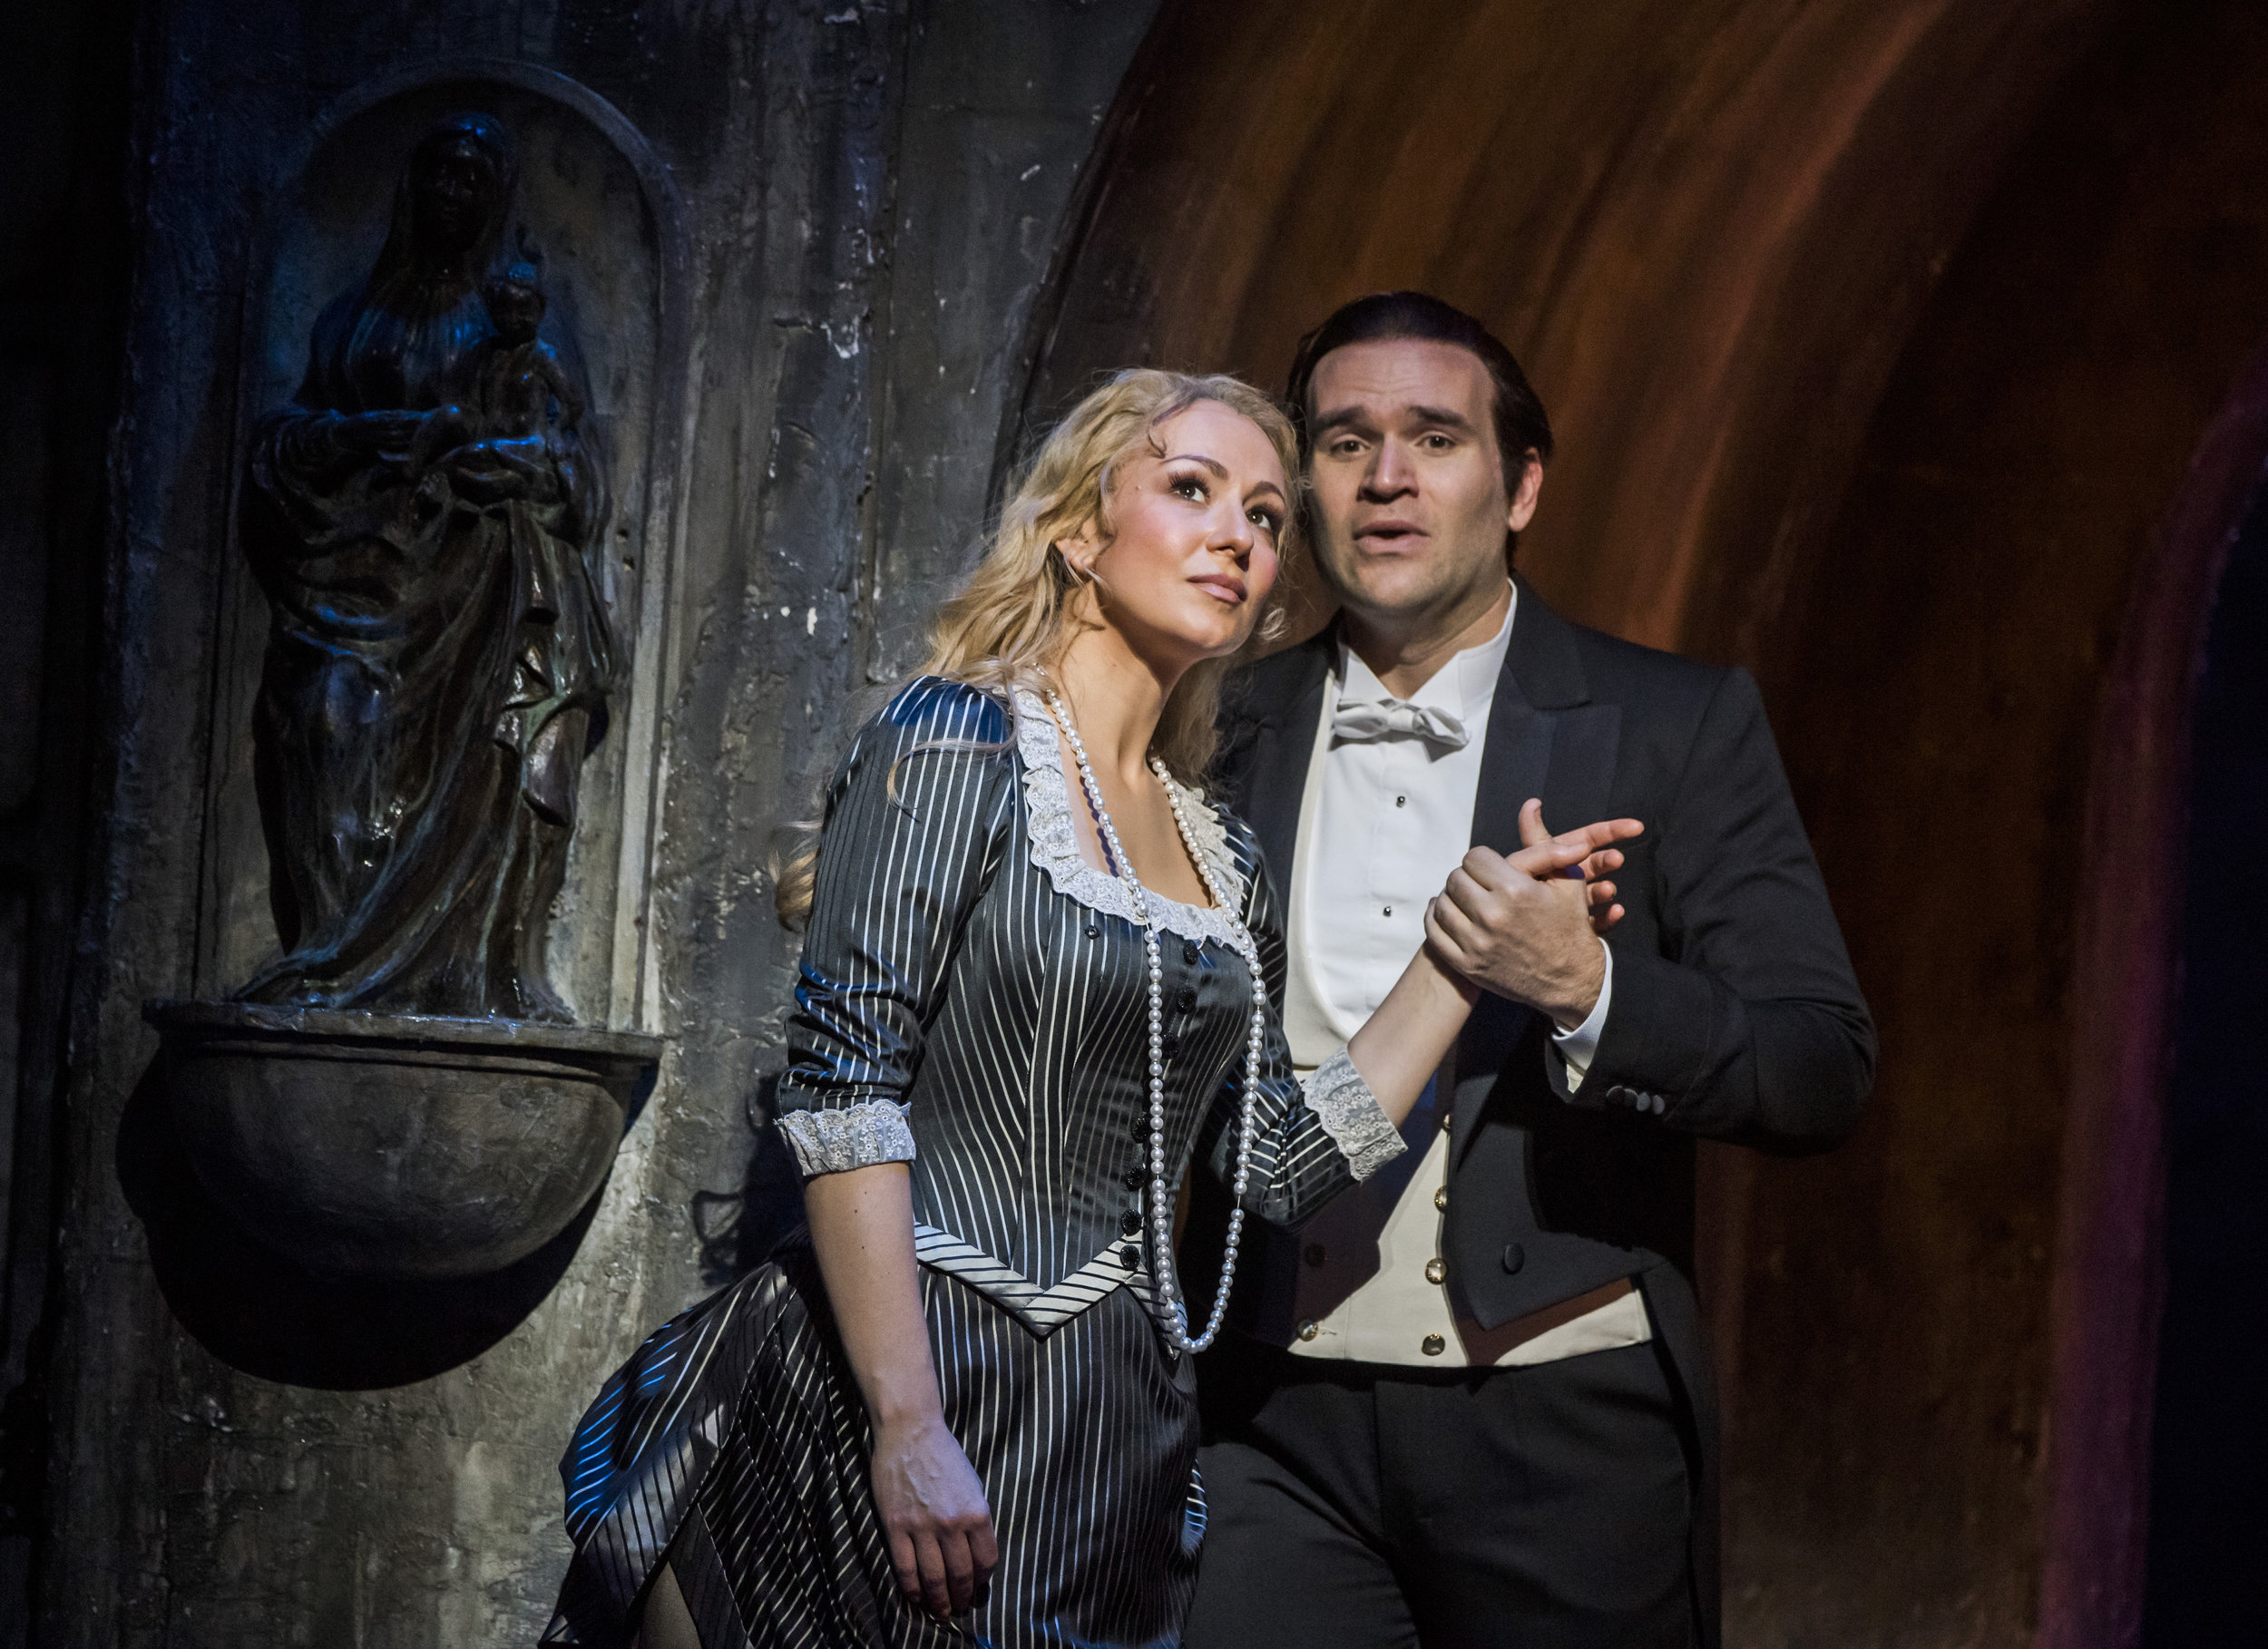 Faust - There are many versions of the story of Faust, who trades his soul with the Devil for youth and power, but Gounod's opera remains one of the most constantly enthralling. Michael Fabiano stars as Faust, with Diana Damrau as his beloved Marguerite and Erwin Schrott as the diabolical Méphistophélès.Virtuoso leading roles, a large chorus, sensational sets, ballet and an ecstatic finale make this the epitome of theatrical spectacle – the lavish scale of French grand opera is wonderfully in evidence in this production by David McVicar, set in 1870s Paris.Above all, the music includes several of popular opera's most recognizable numbers, performed by a cast of great international singers and the Royal Opera Chorus.